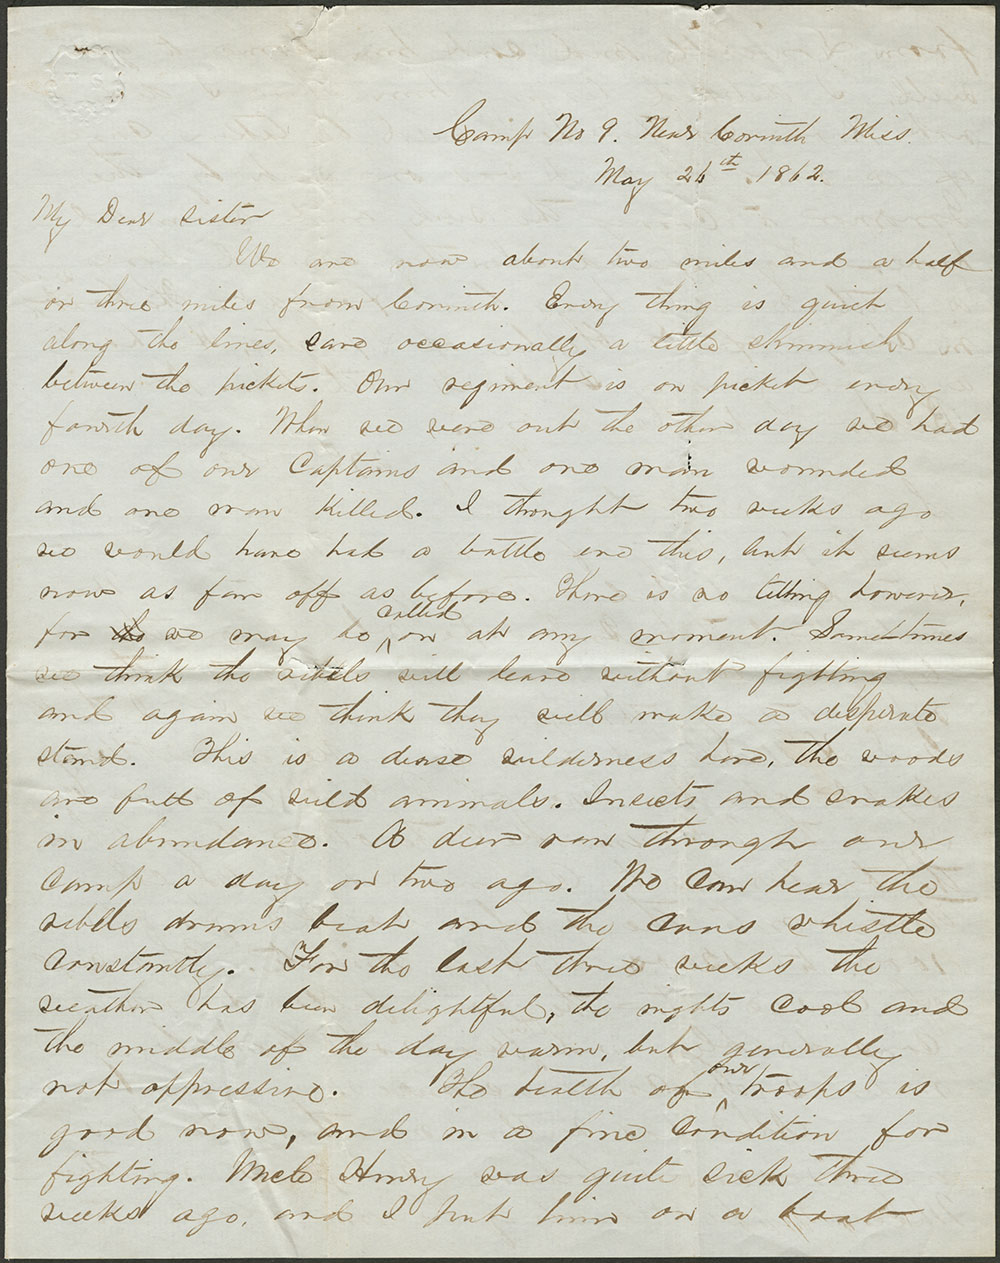 Philemon Burgess Hunt to Mary D. Craig. 24 May, 1862 (MSS 7809)